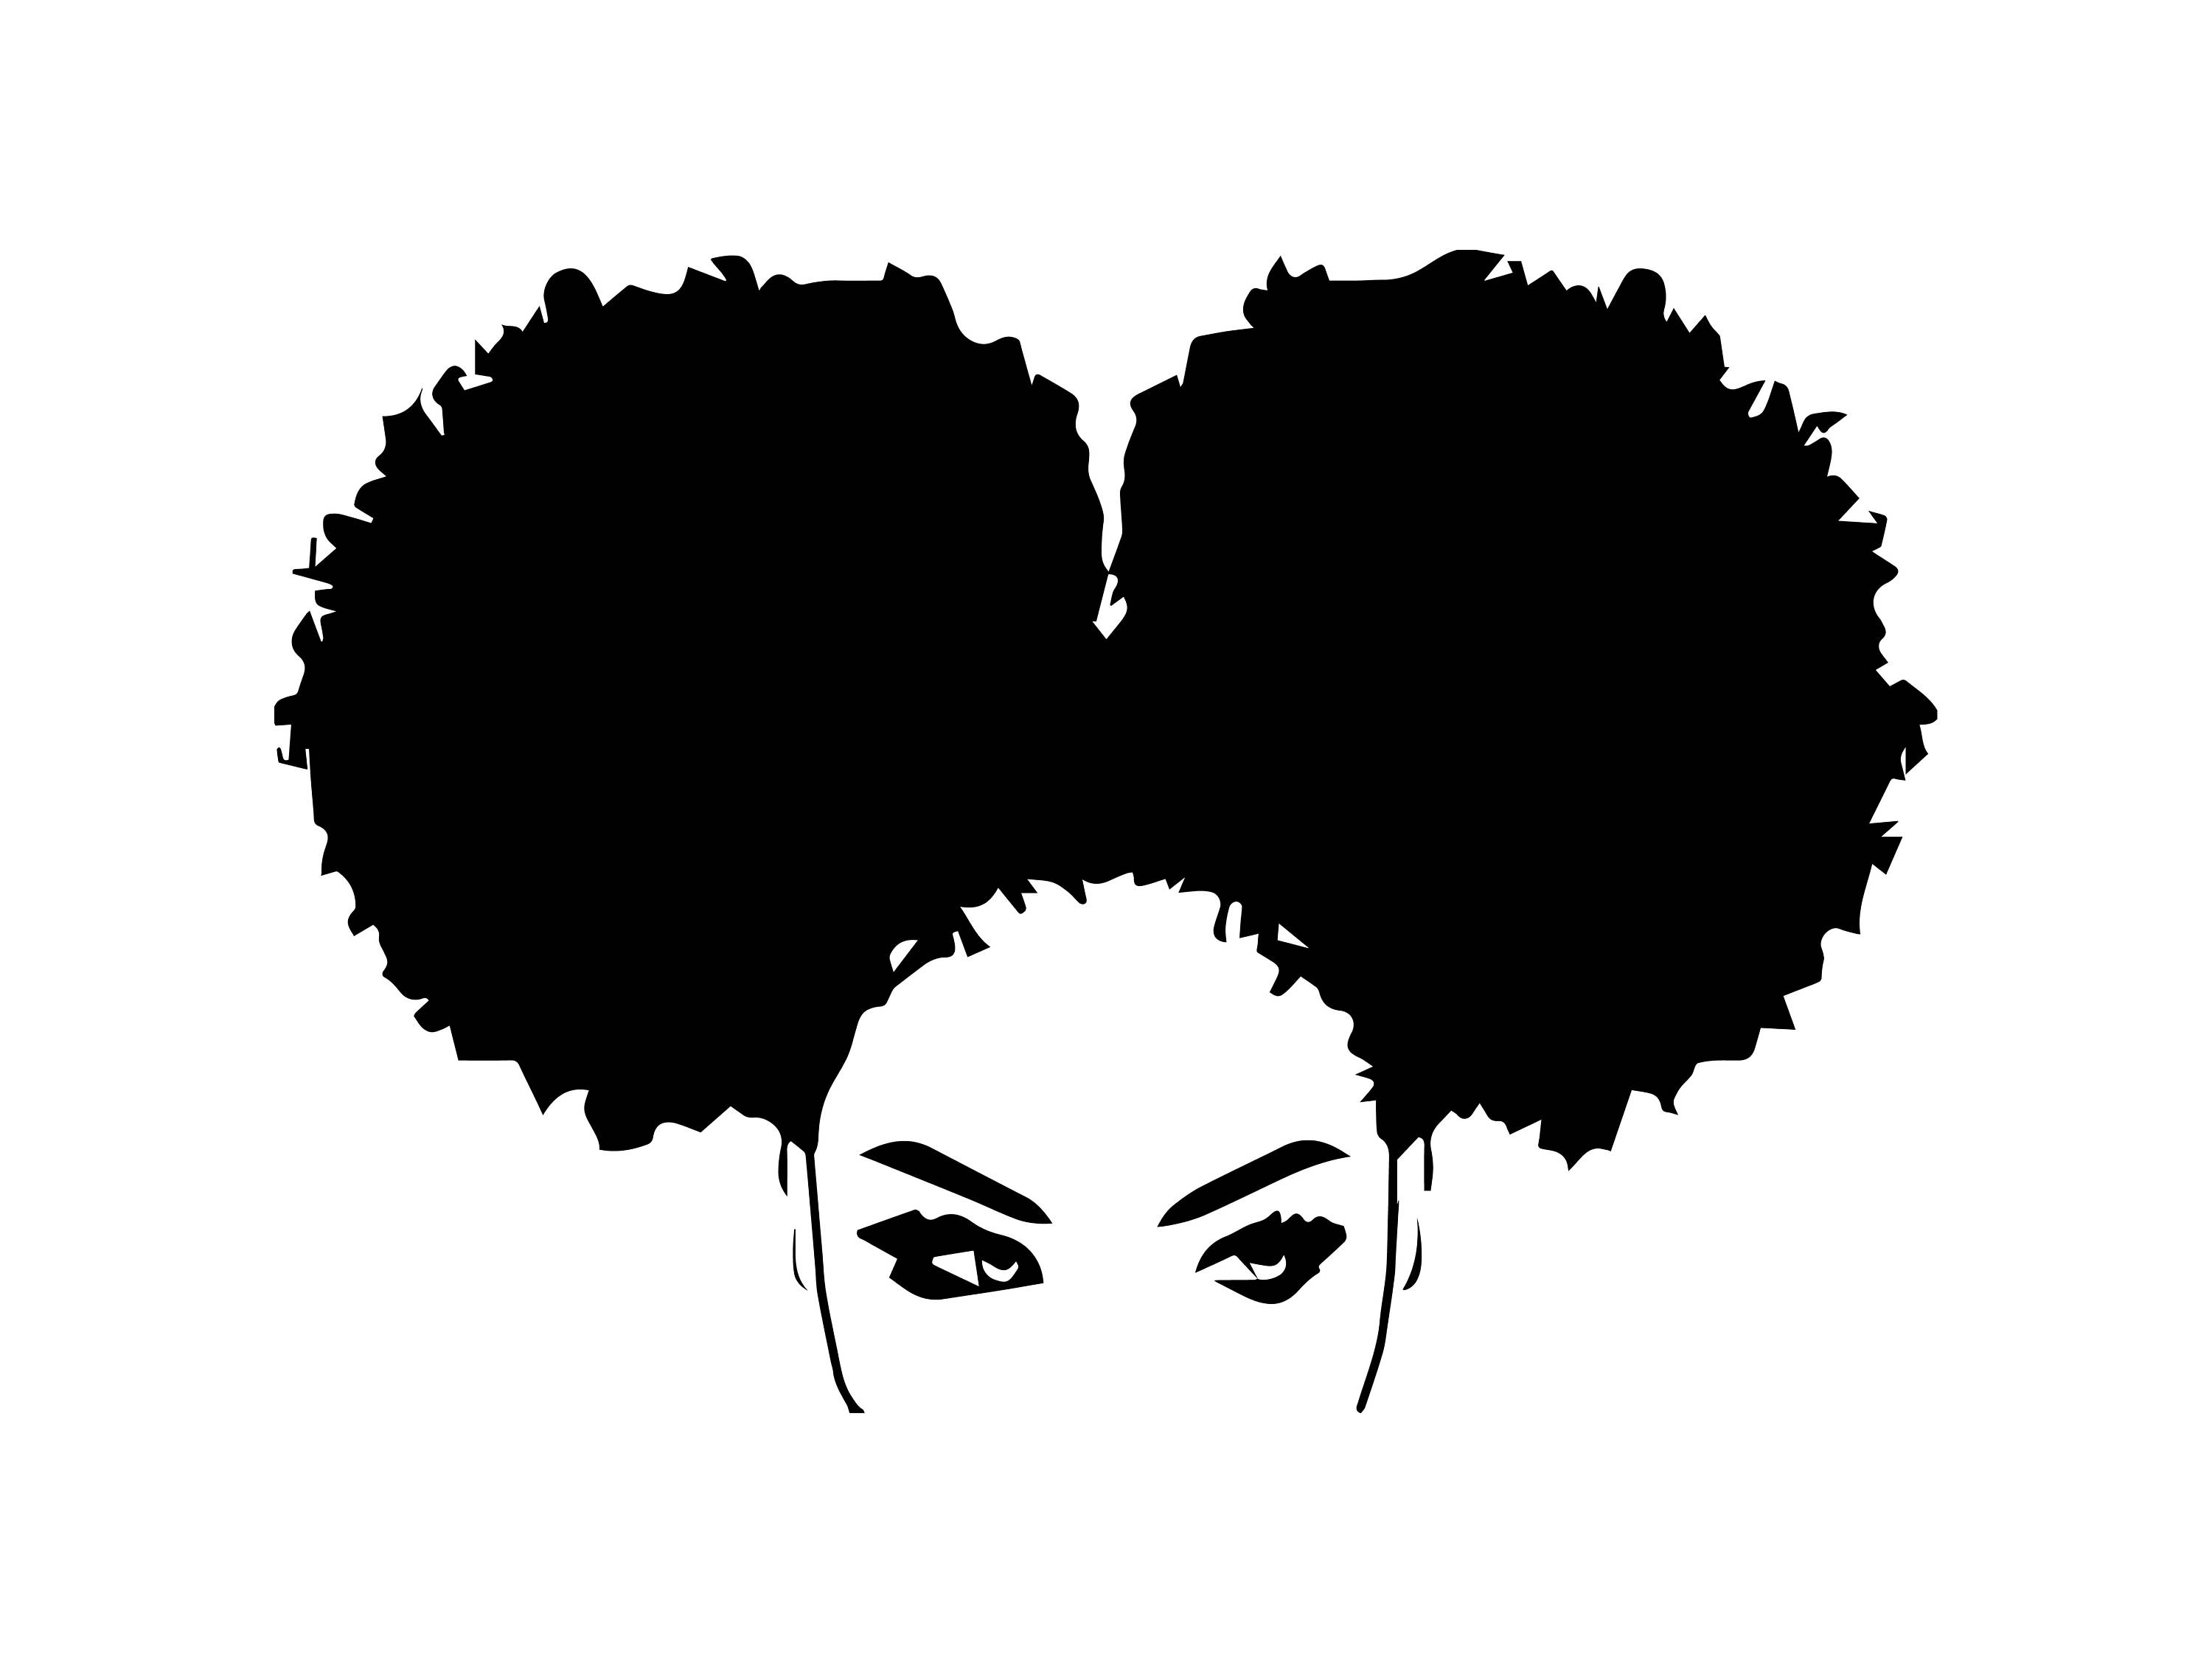 Afro Woman svg Princess Queen Afro Hair Beautiful African American Female  Lady SVG .EPS .PNG Vector Clipart Digital Circuit Cut Cutting.